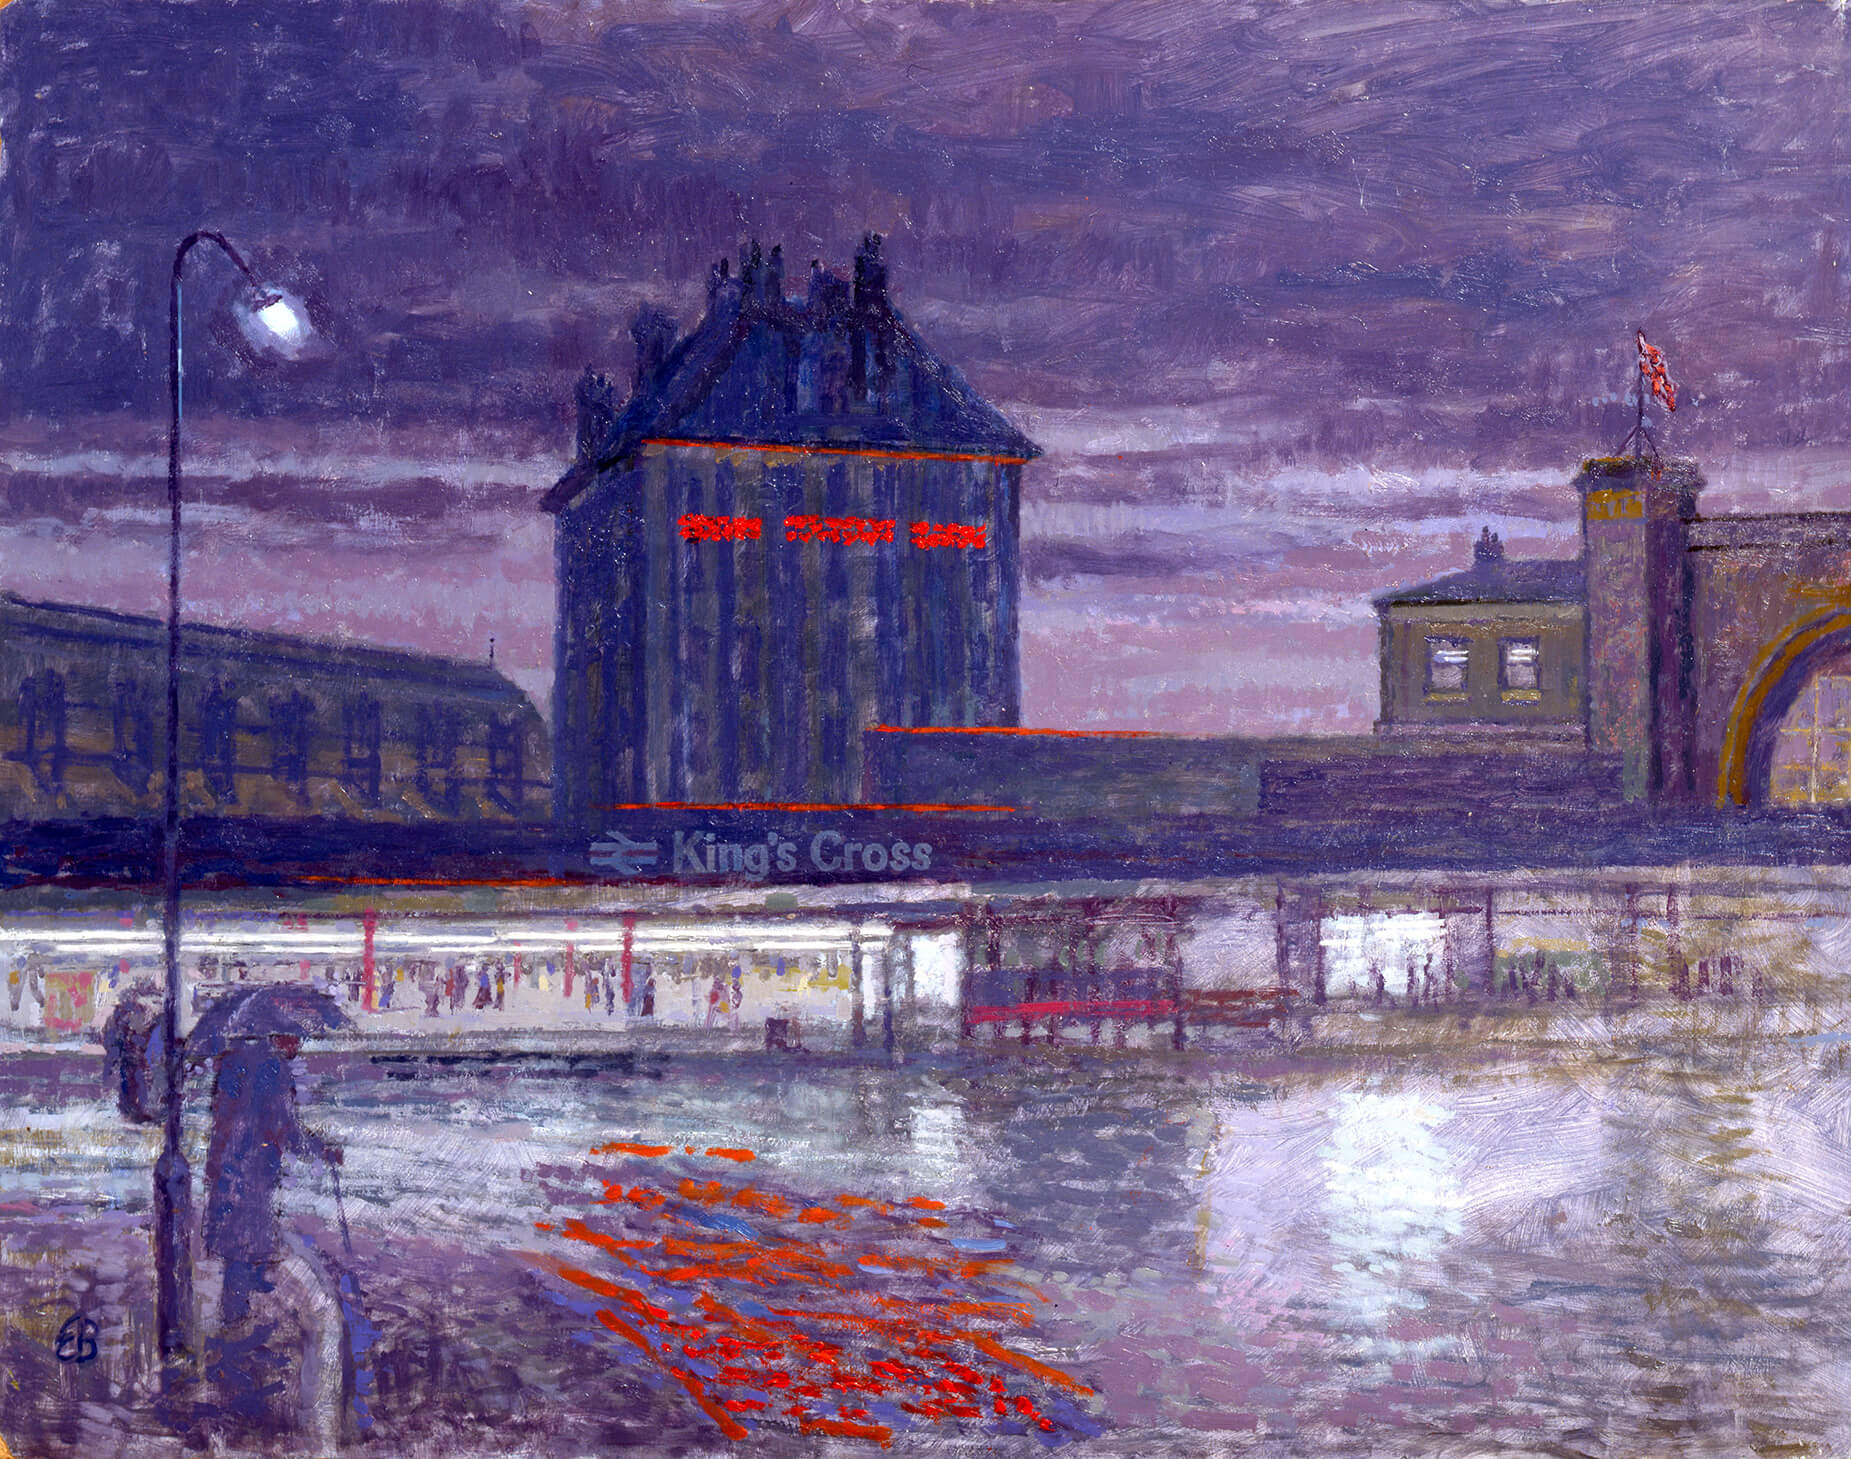 Kings Cross Station Hotel (before the fire)